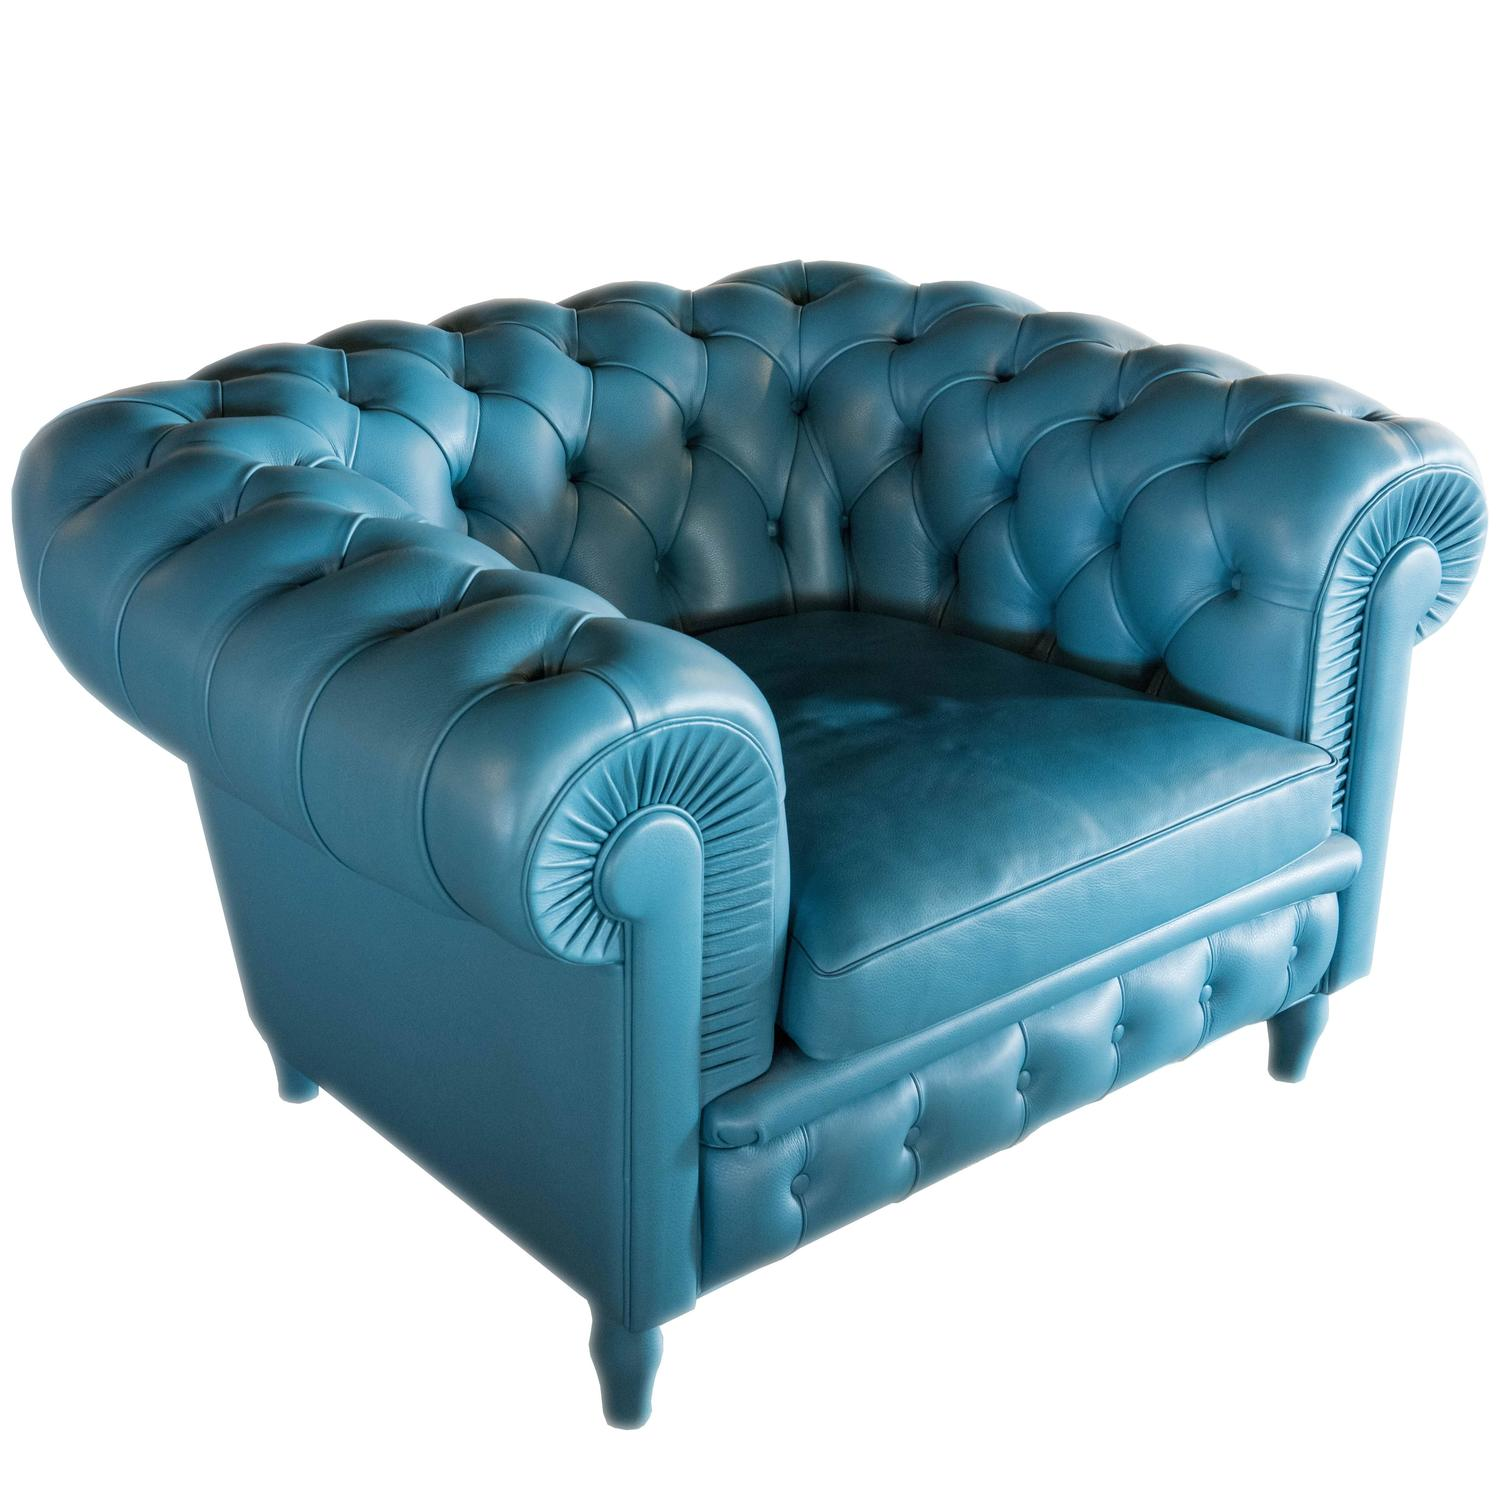 Poltrona frau chester armchair for sale at 1stdibs for Poltrona chester